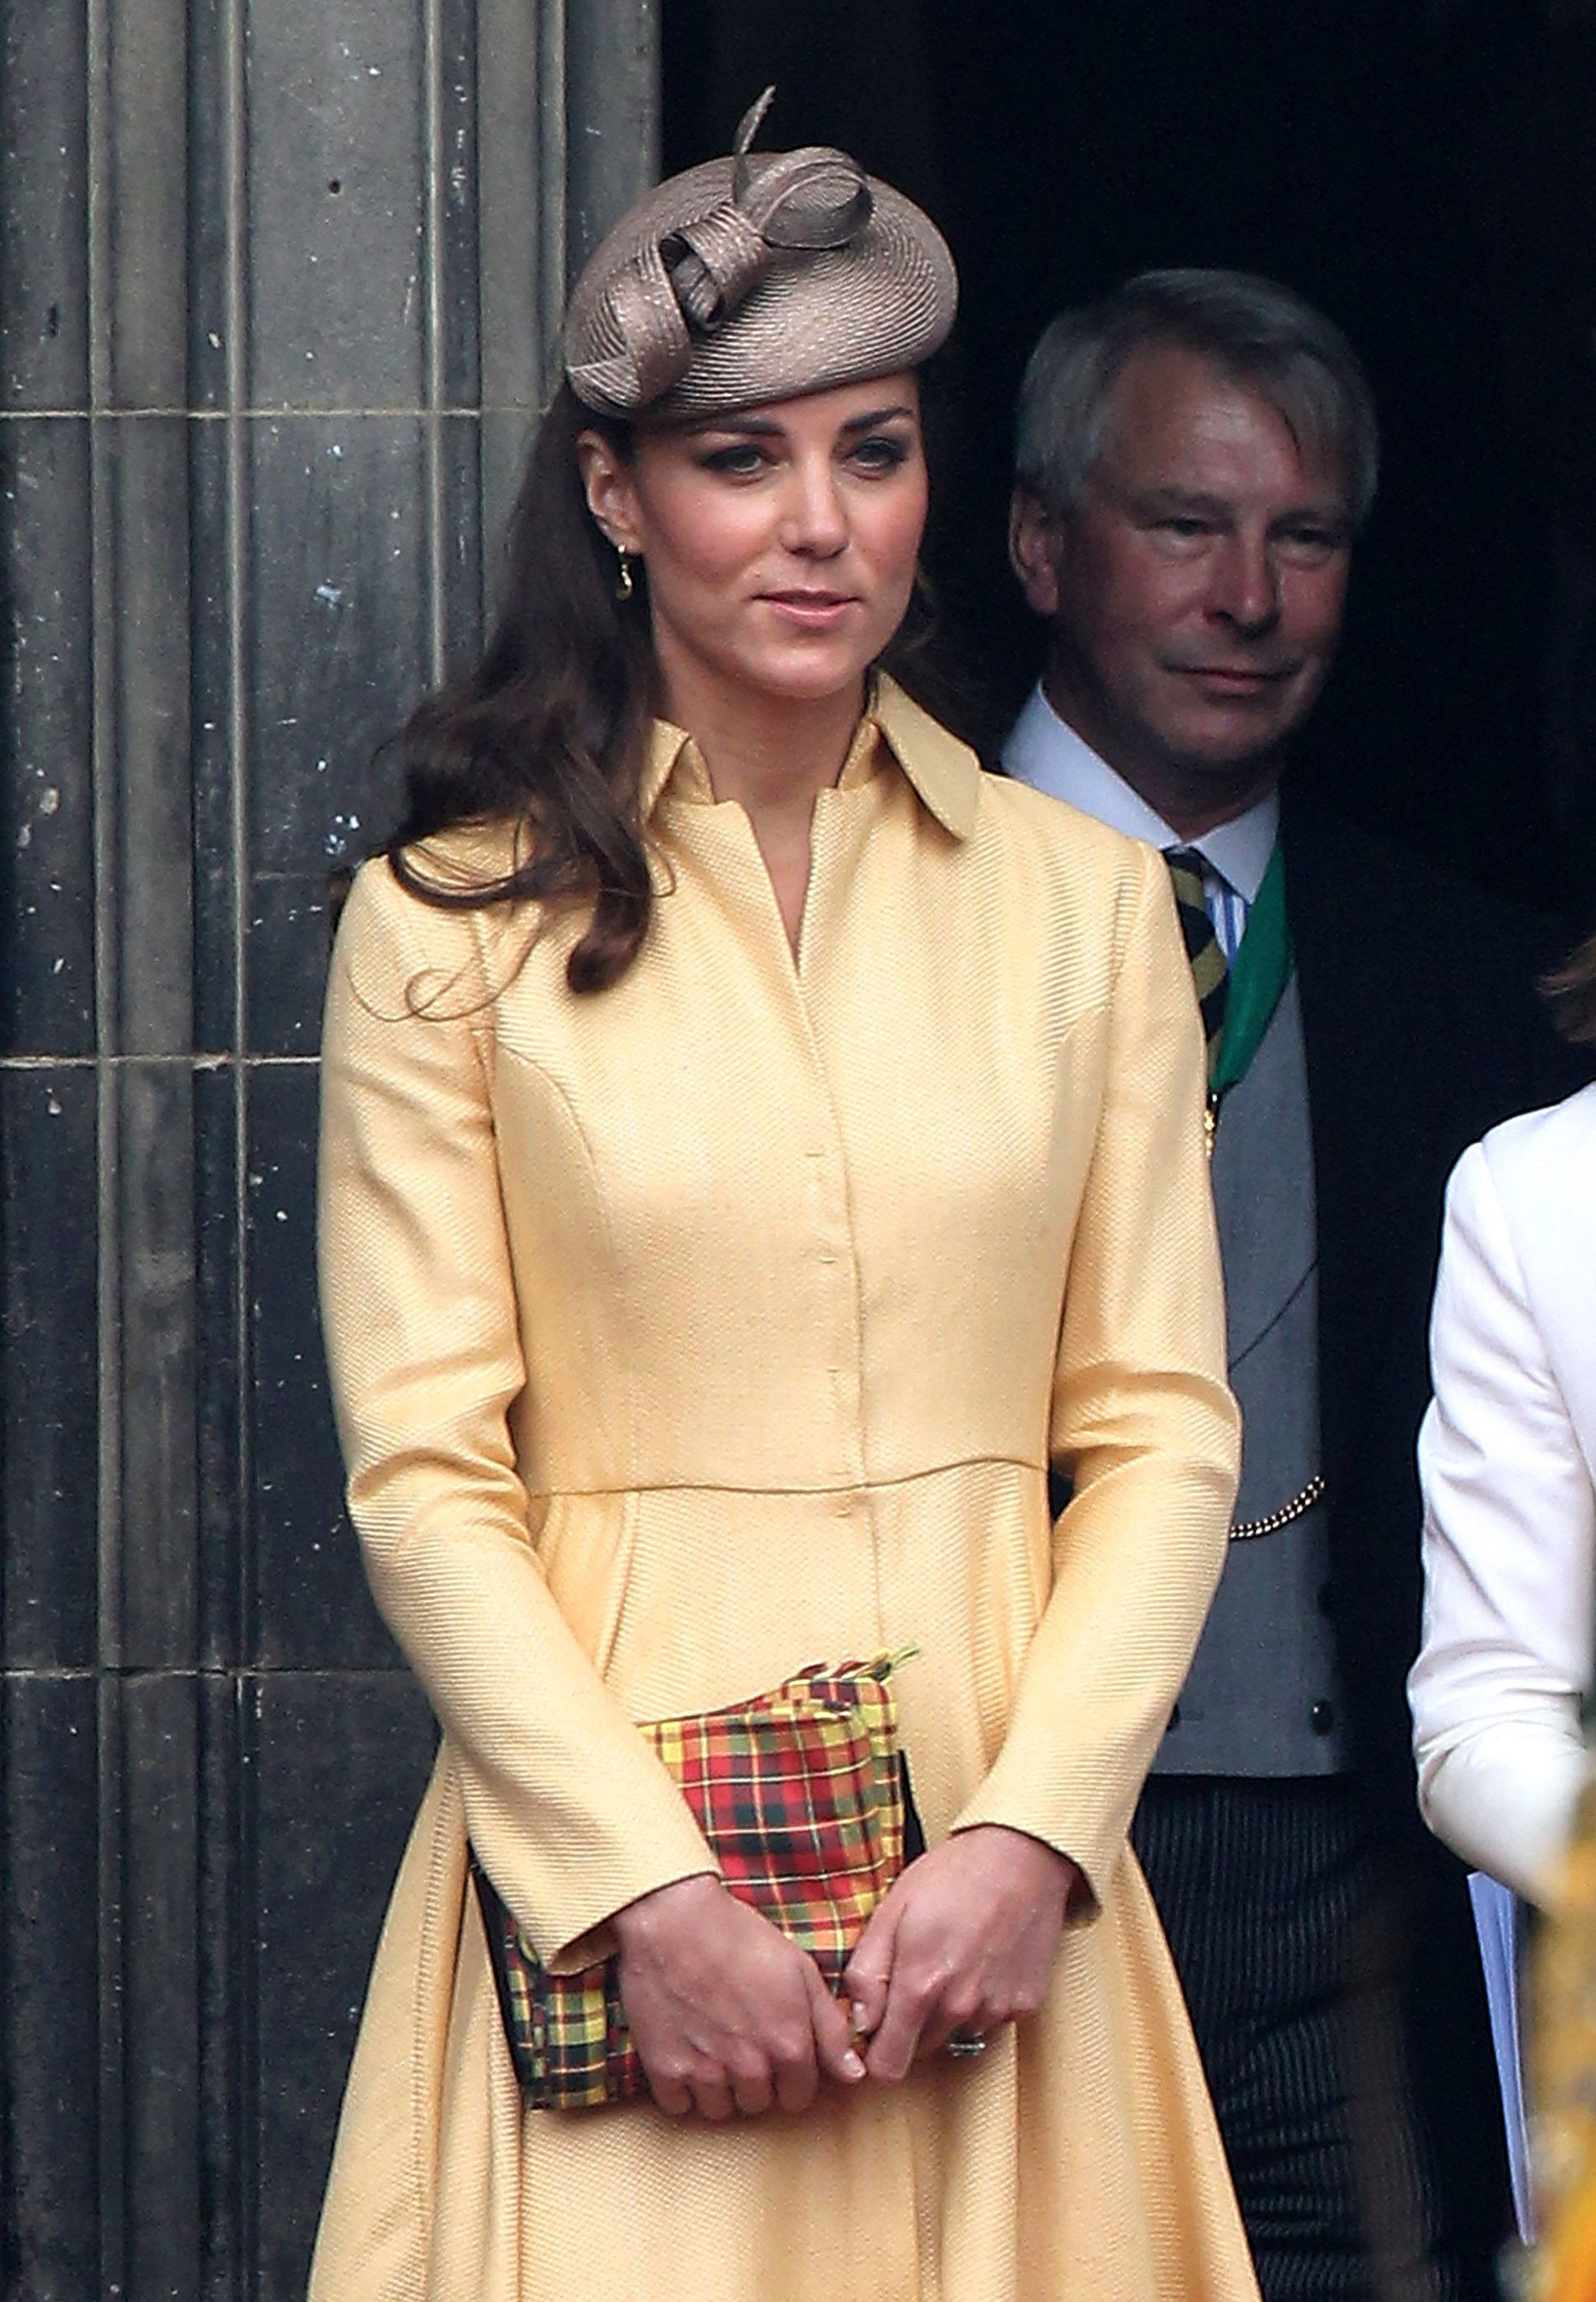 Kate Middleton at Order of the Thistle in 2012.